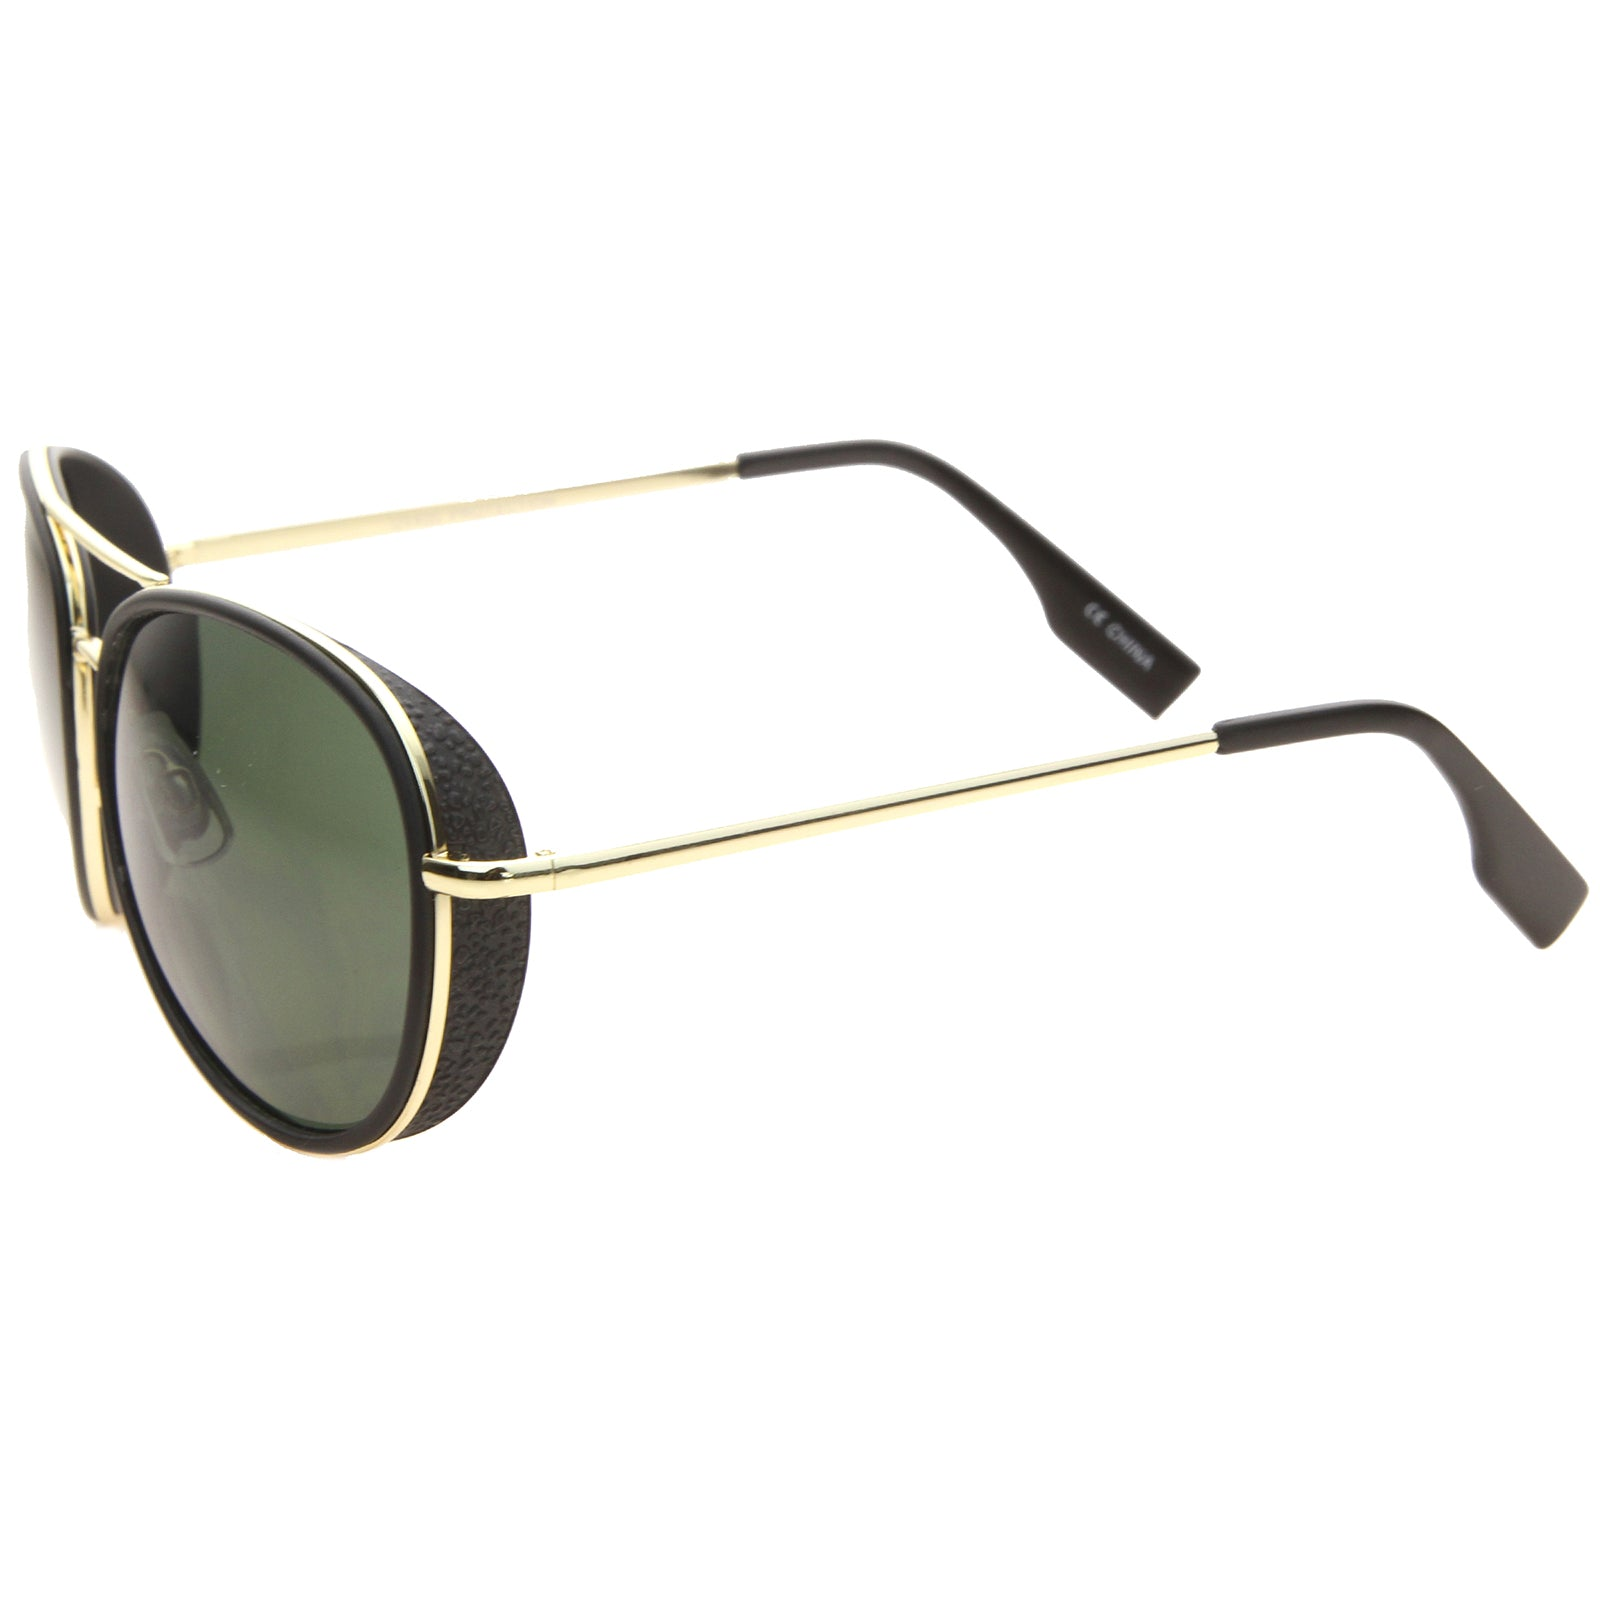 Womens Aviator Sunglasses With UV400 Protected Gradient Lens - sunglass.la - 11